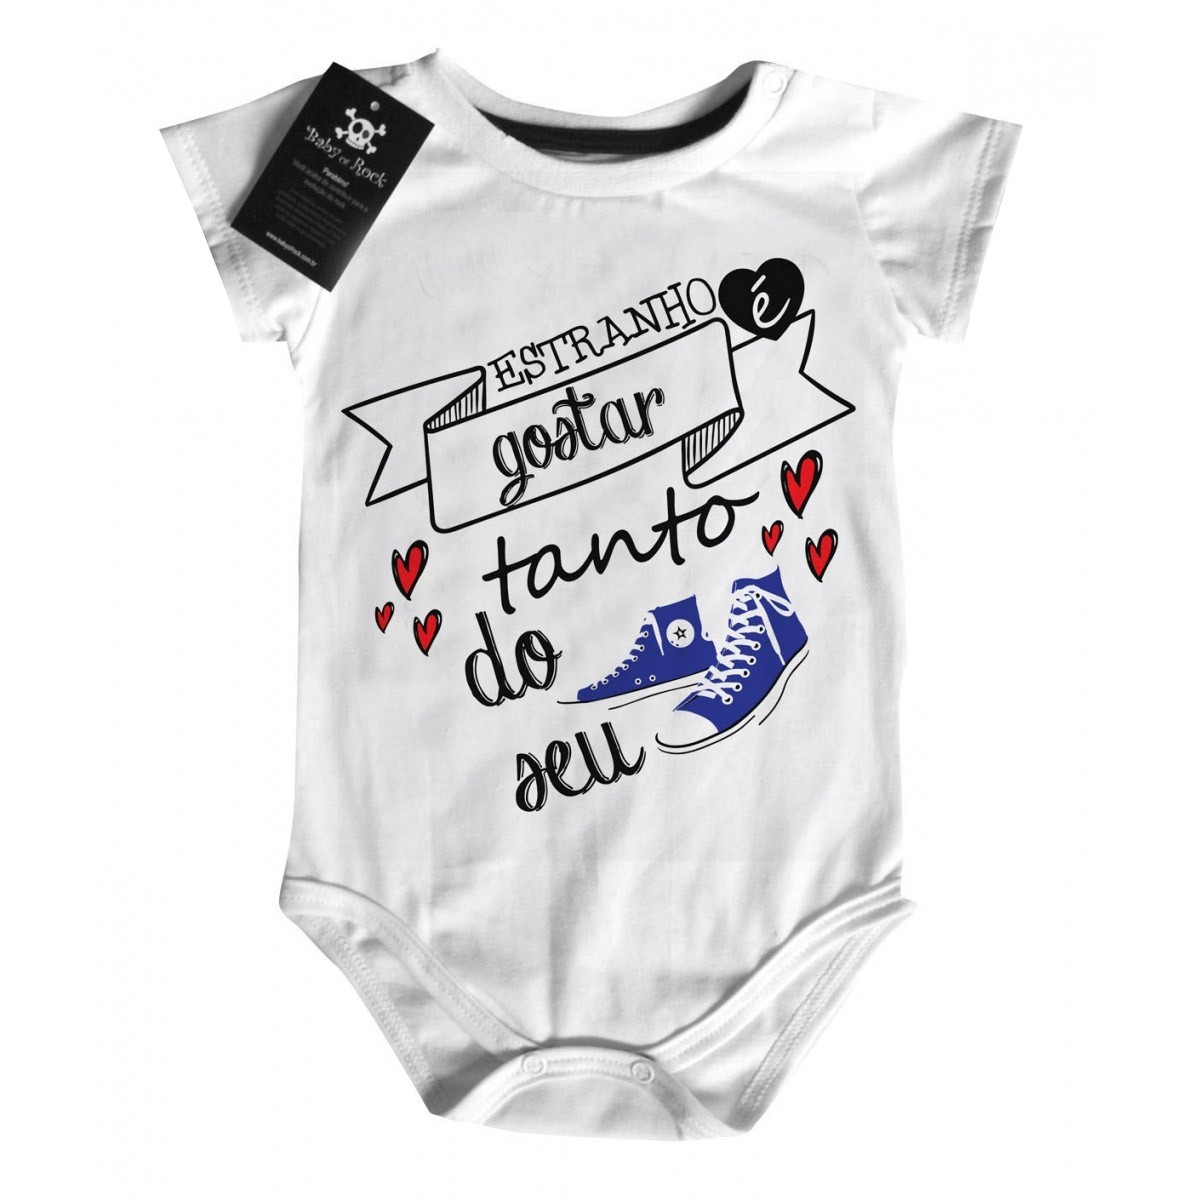 Body Bebe Rock - Meu All Star Azul D - White  - Baby Monster S/A